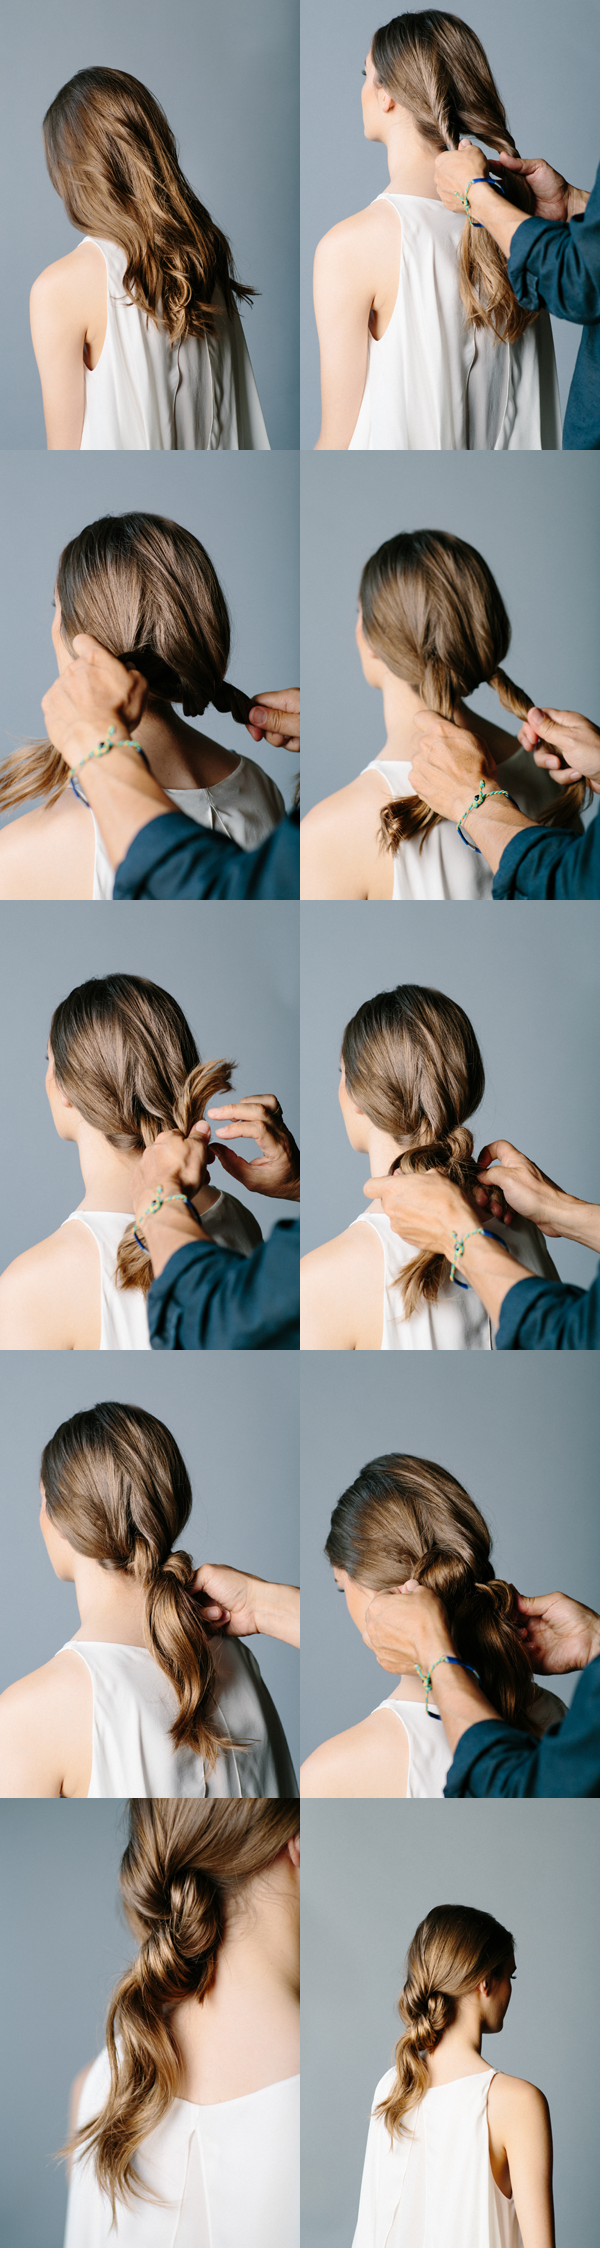 diy-double-knot-twist-tutorial